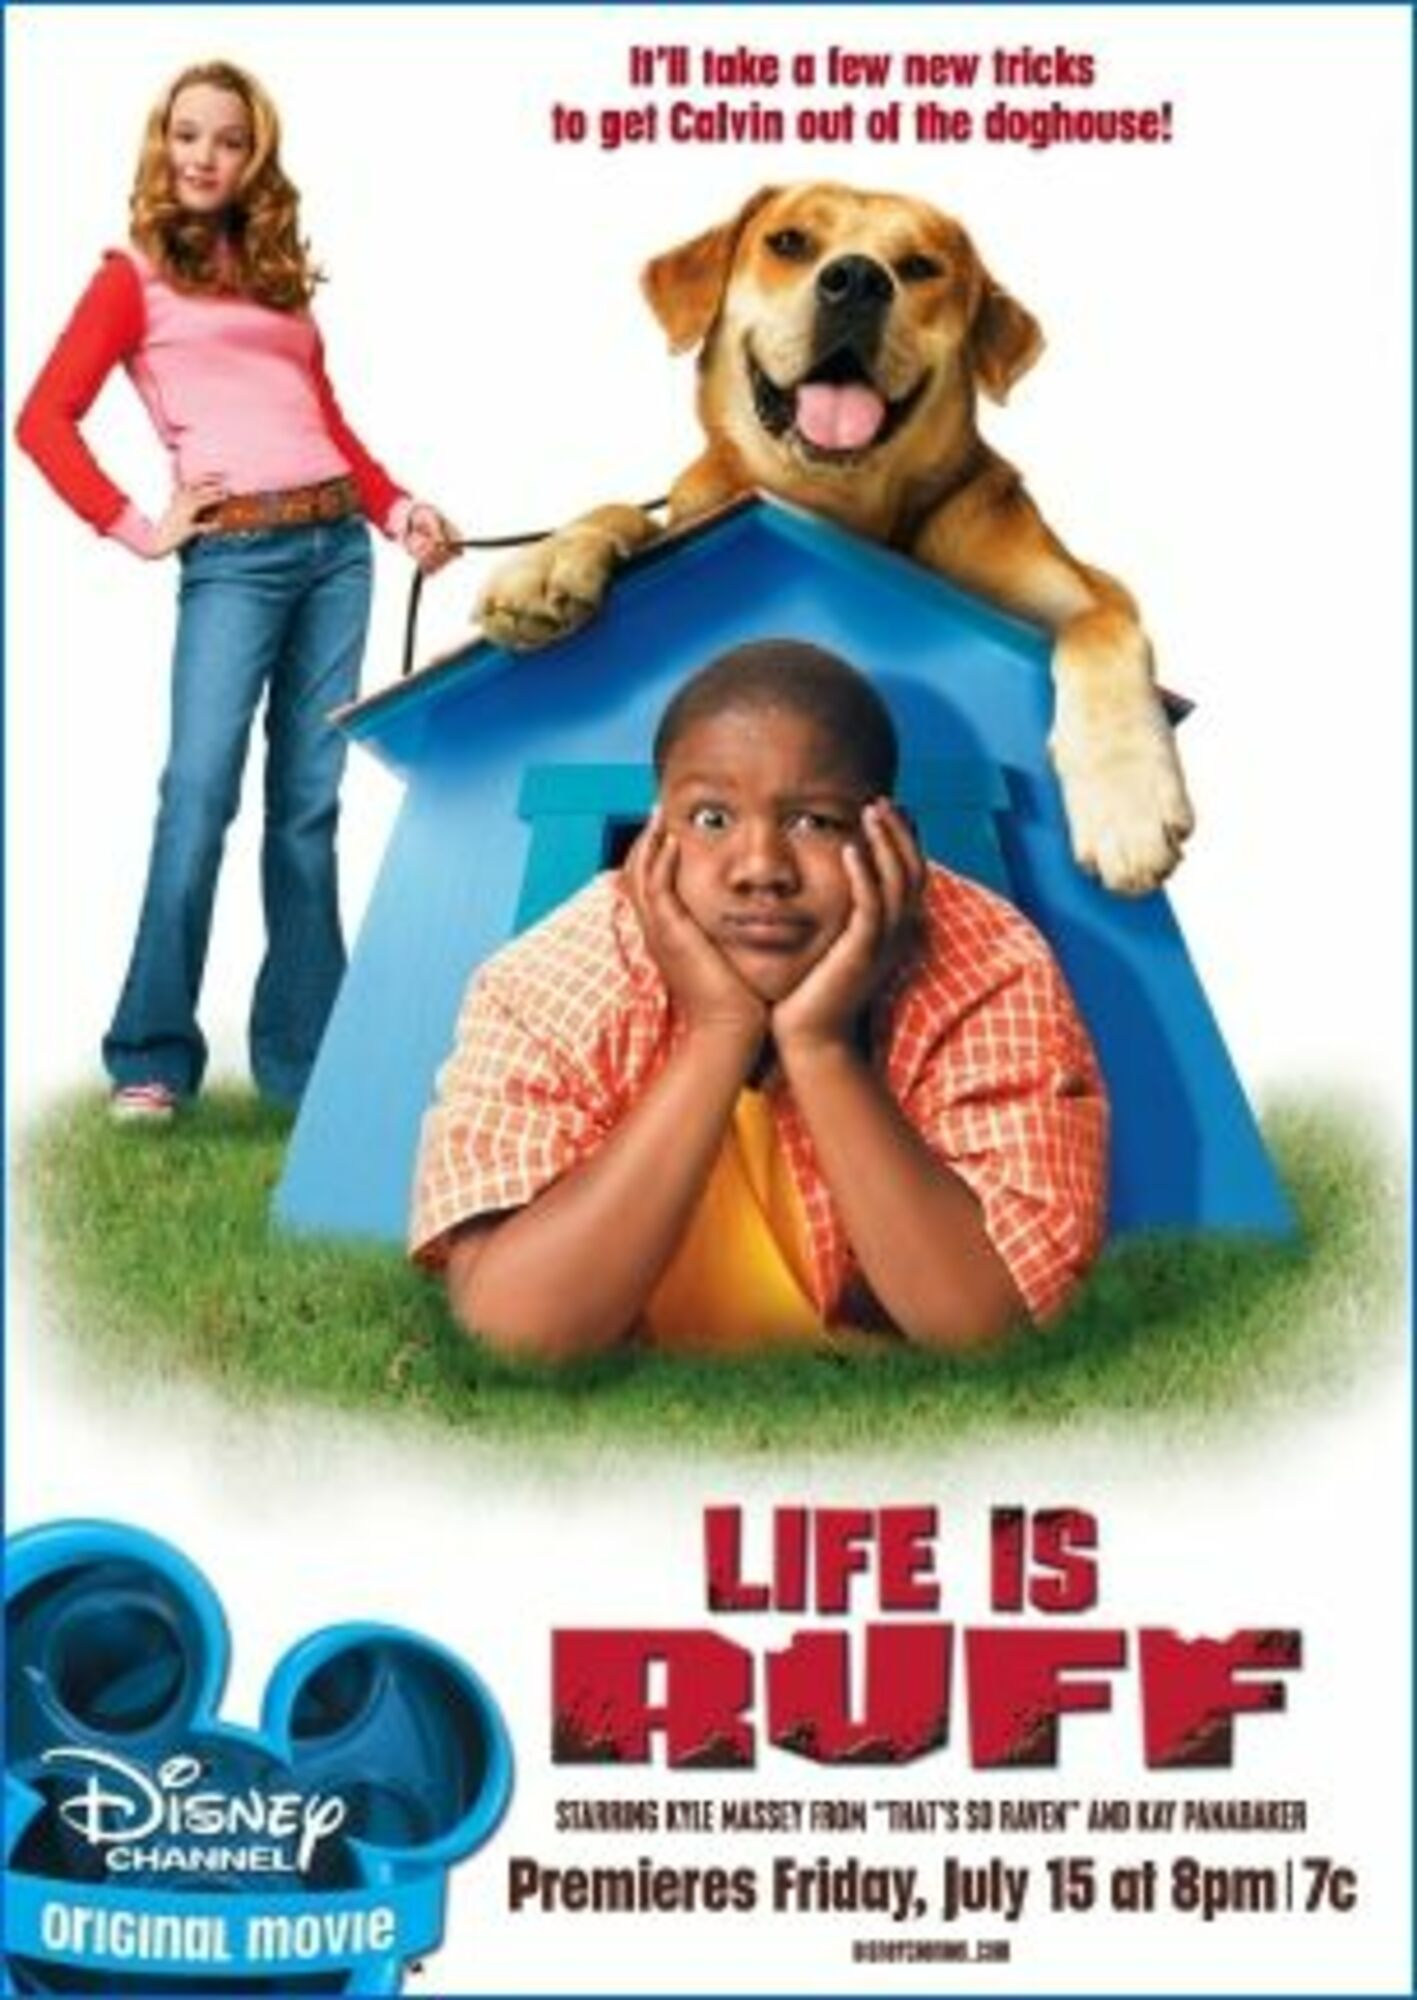 Affiche poster calvin tyco life ruff disney channel